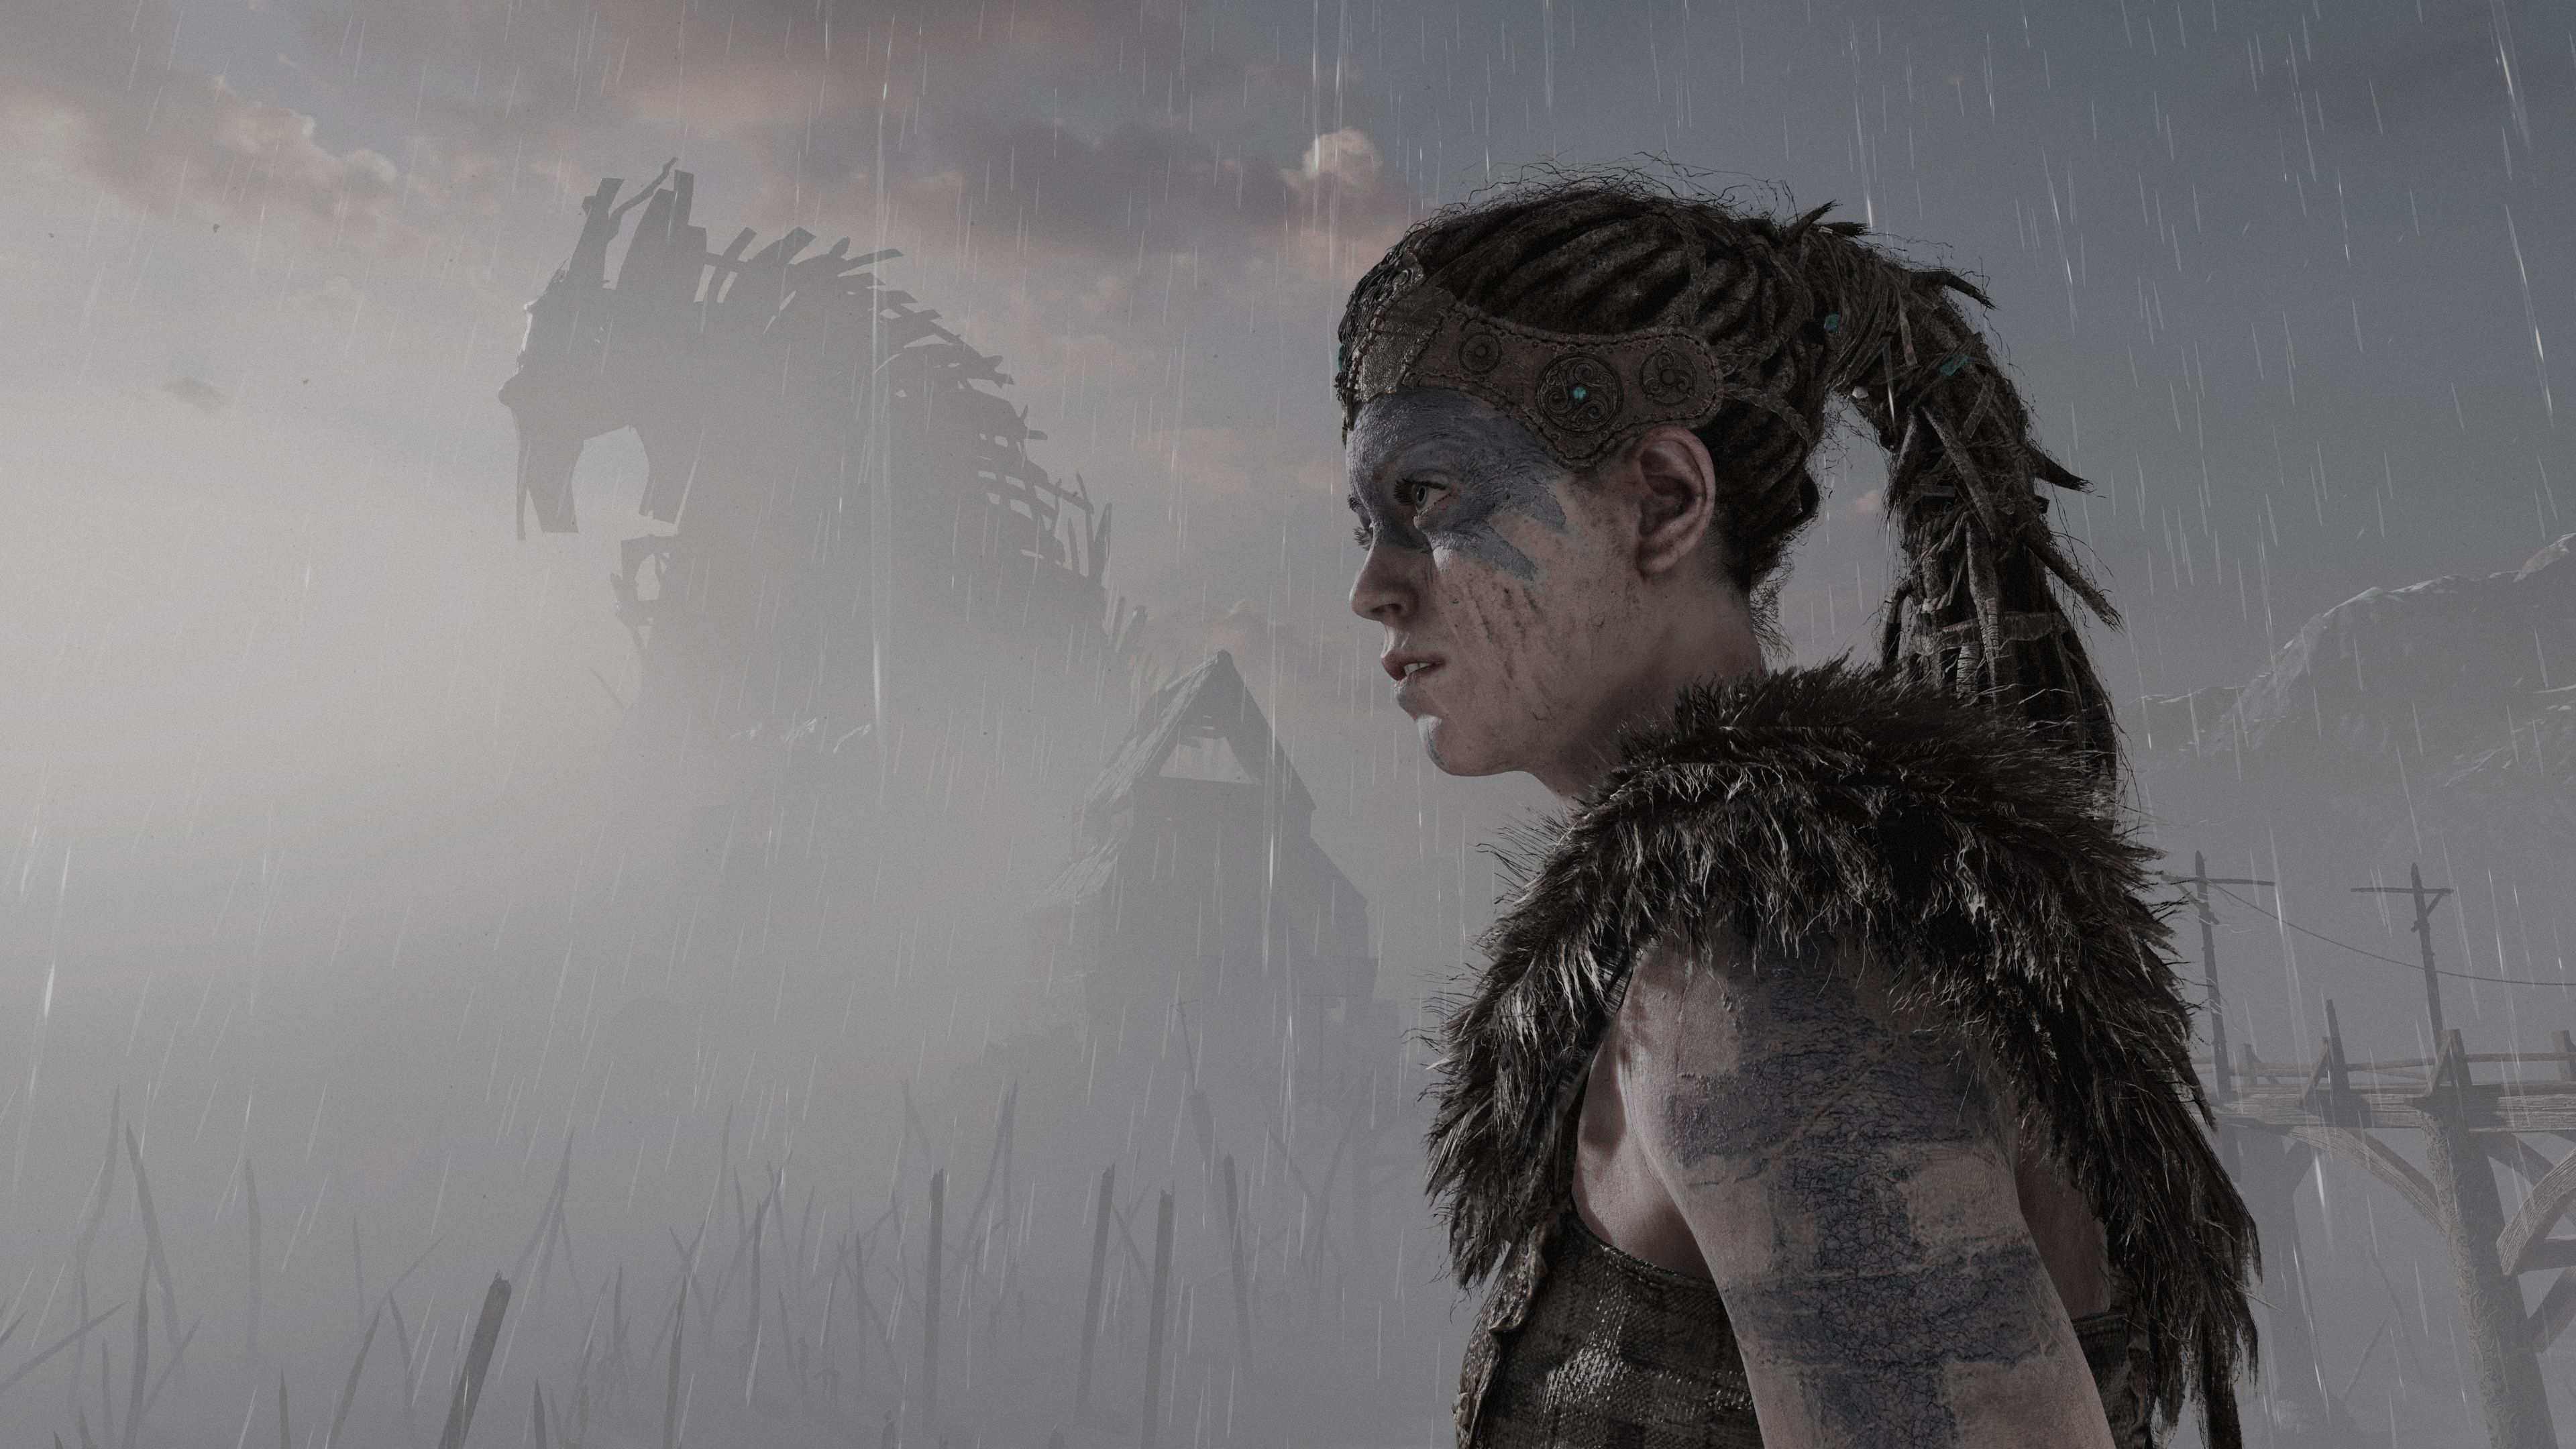 Hellblade Senuas Sacrifice 4k, HD Games, 4k Wallpapers, Image